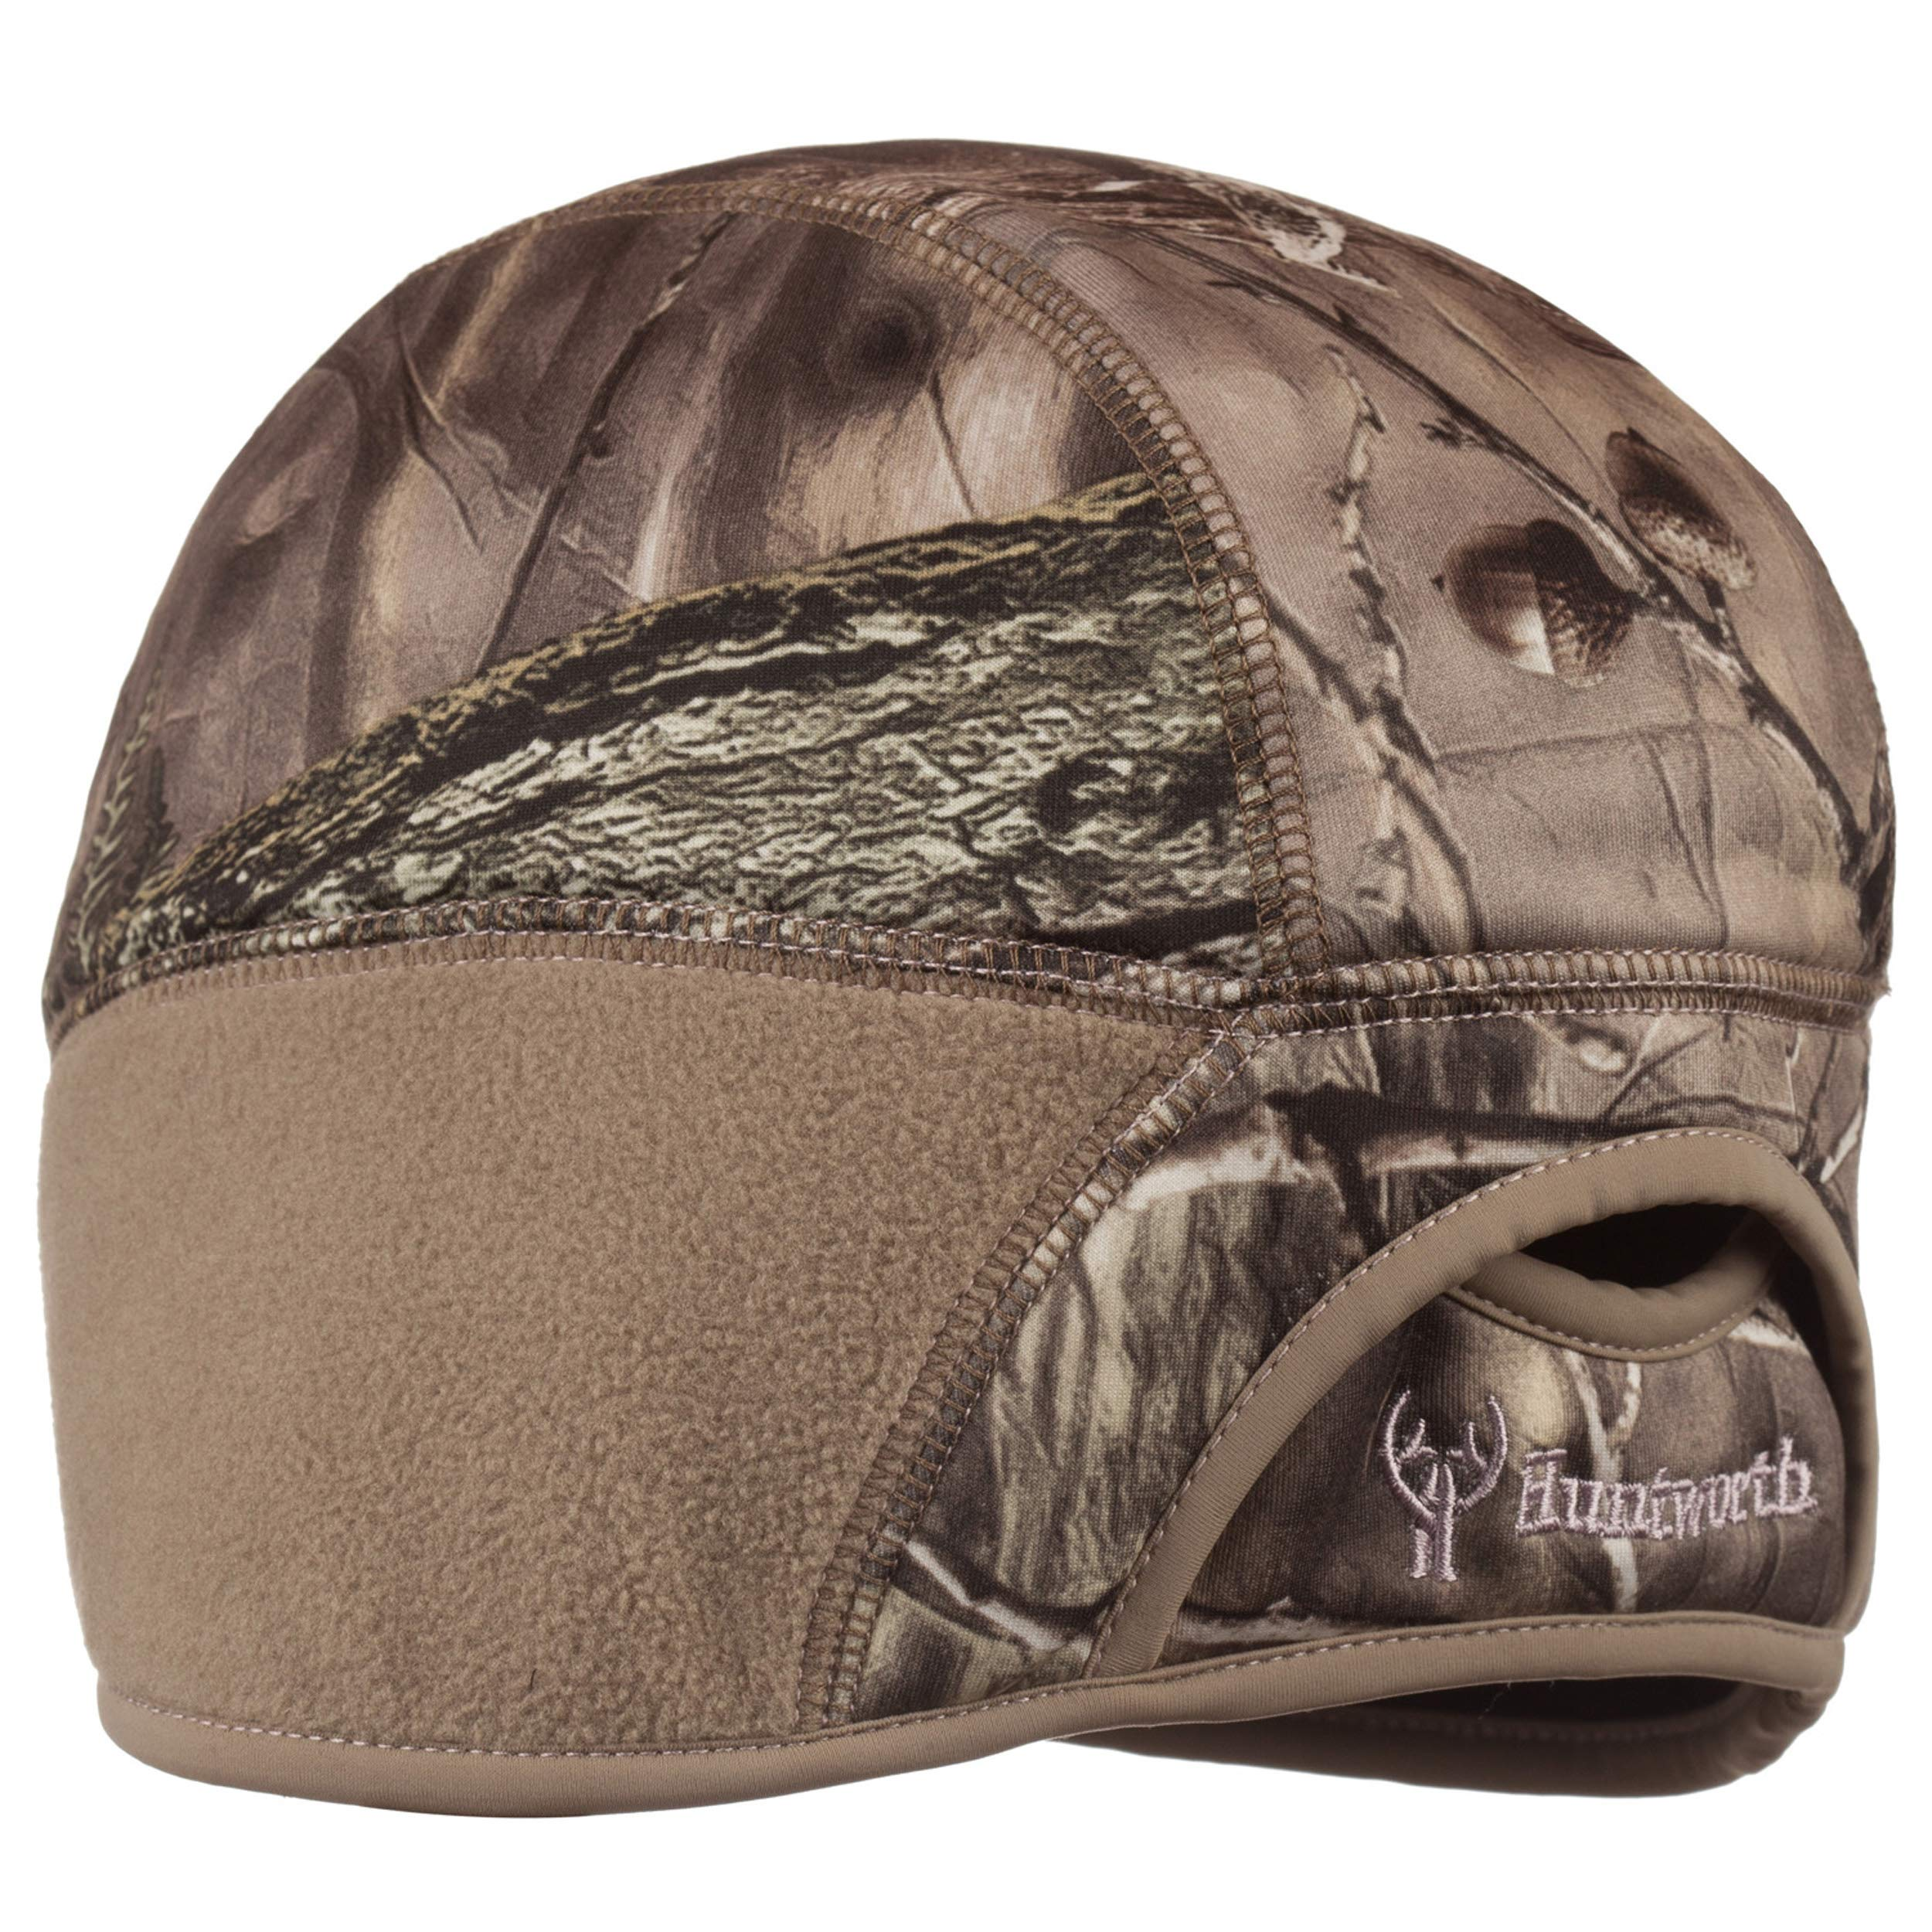 Huntworth Ladies HIDD'N Camo Performance Fleece Beanie Hat with Pony Tail Slot in Back (S/M) by Huntworth